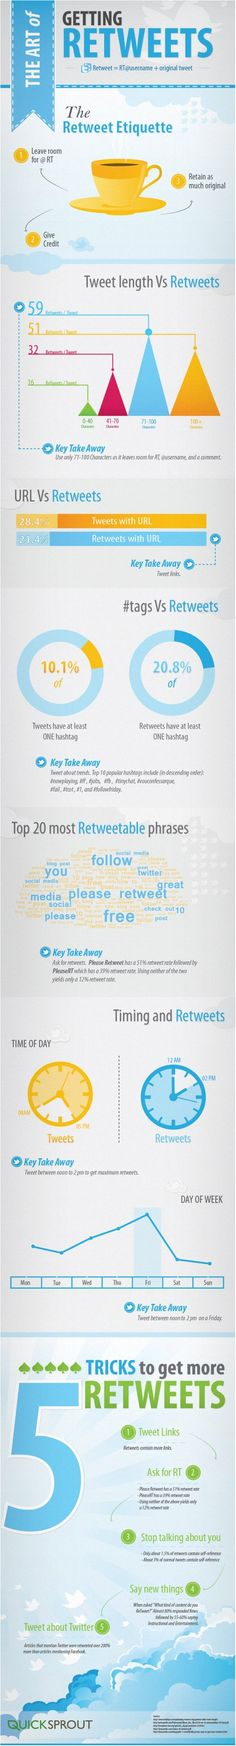 How to Get More Retweets on Twitter - Jeffbullas's Blog